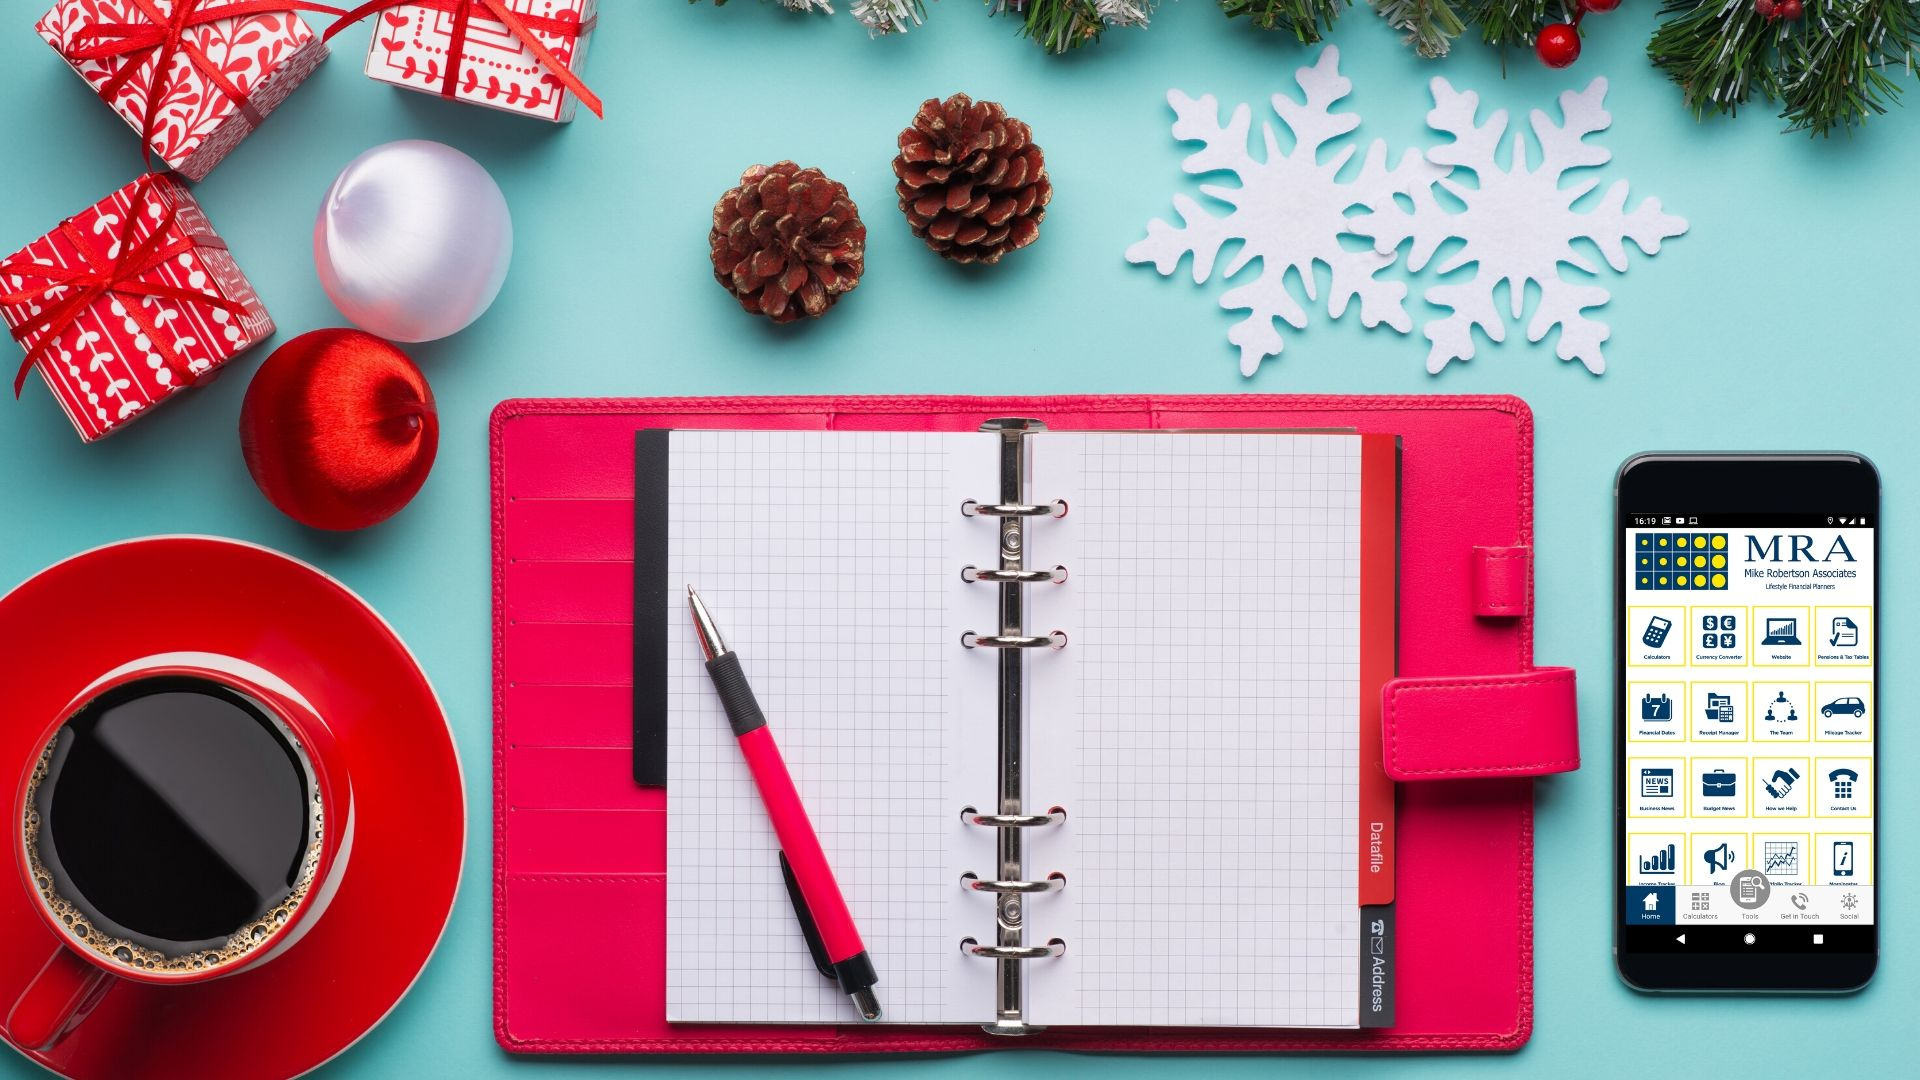 red filofax open on a turquoise desk with paper snowflakes and pine cones scattered around